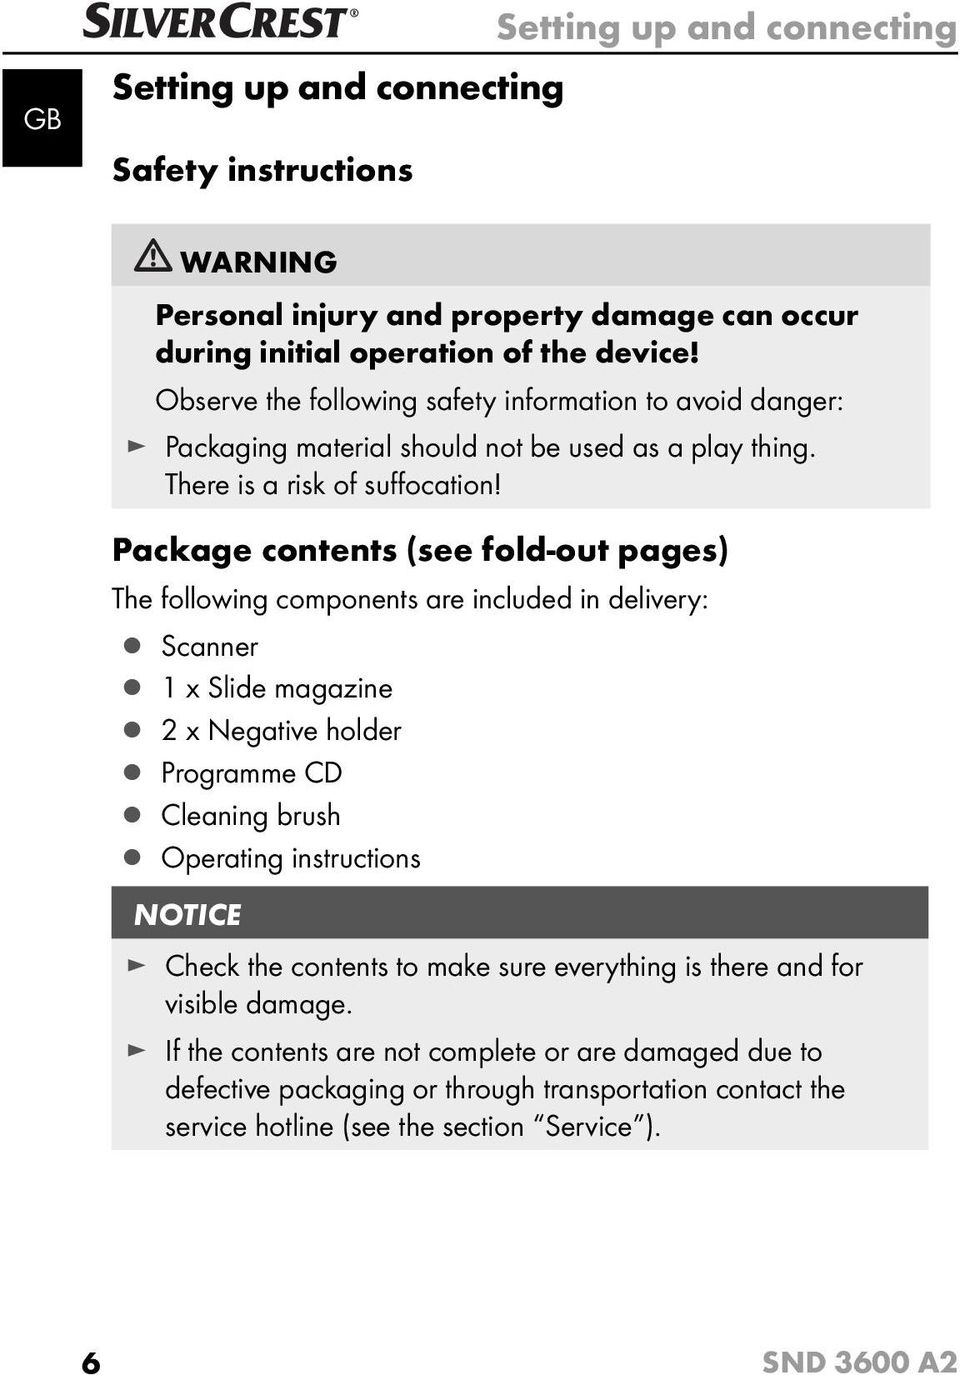 Package contents (see fold-out pages) The following components are included in delivery: Scanner 1 x Slide magazine 2 x Negative holder Programme CD Cleaning brush Operating instructions